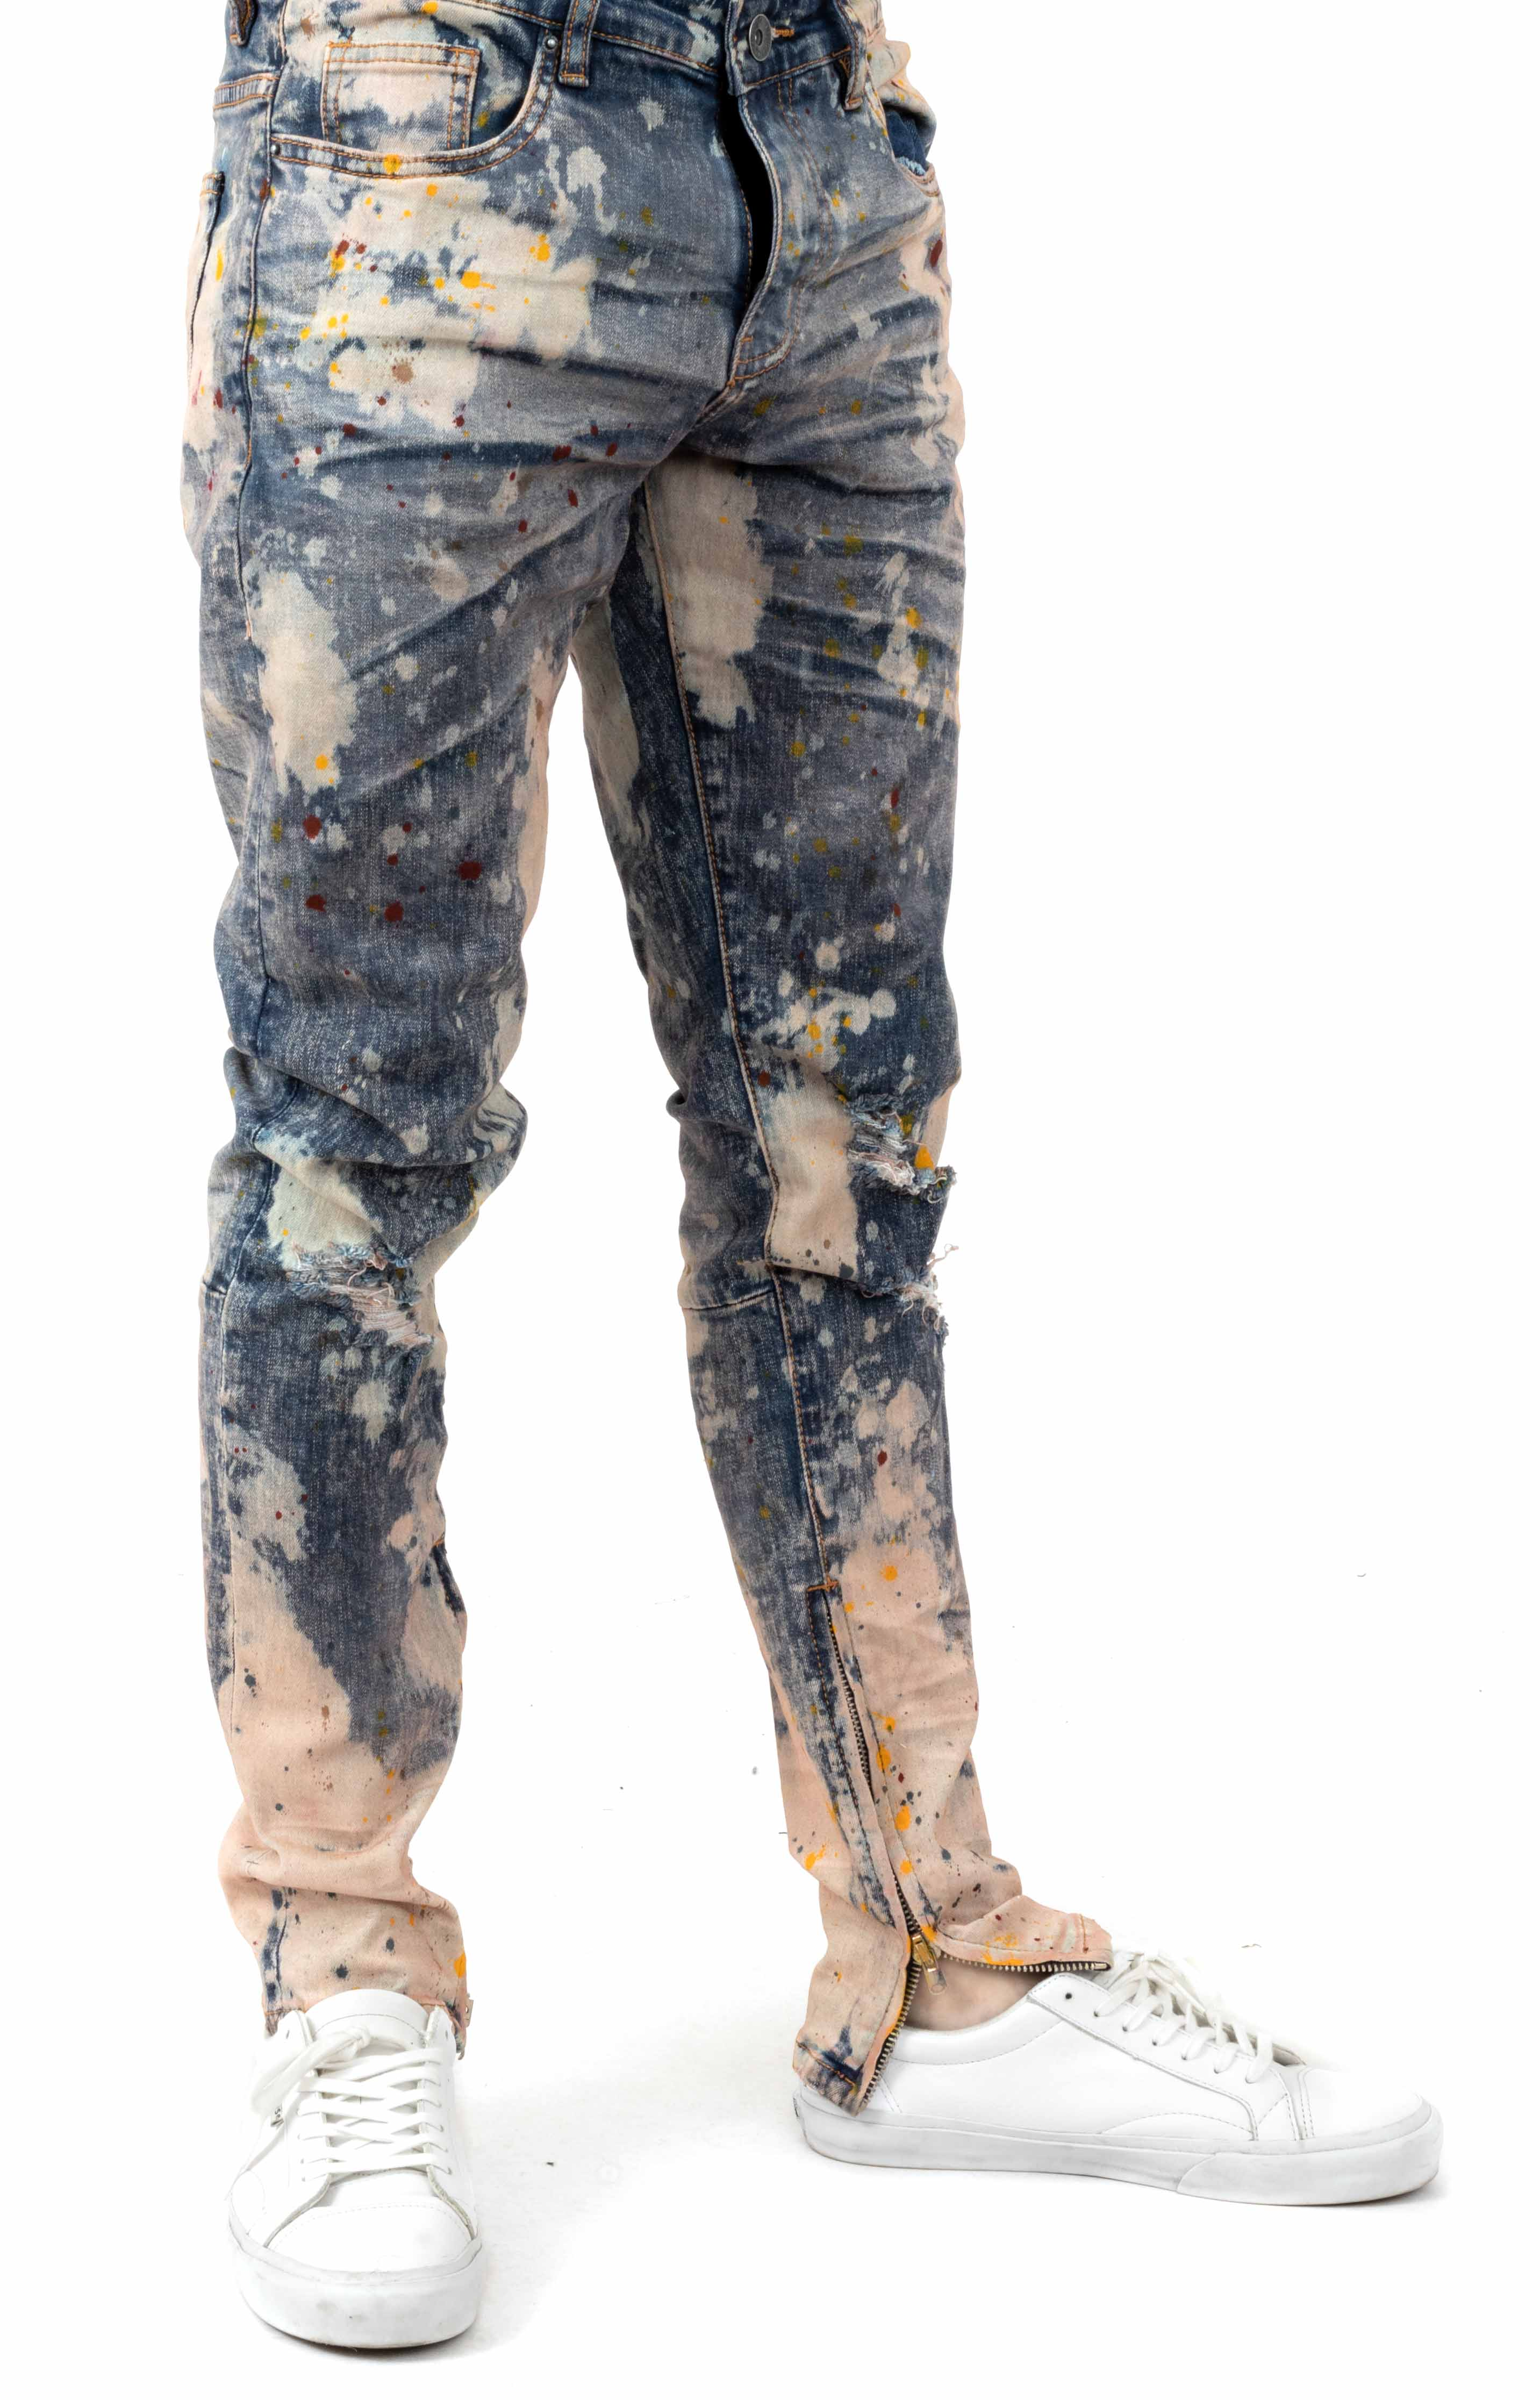 (CRYSP219-103) Pacific Denim Jeans - Bleach